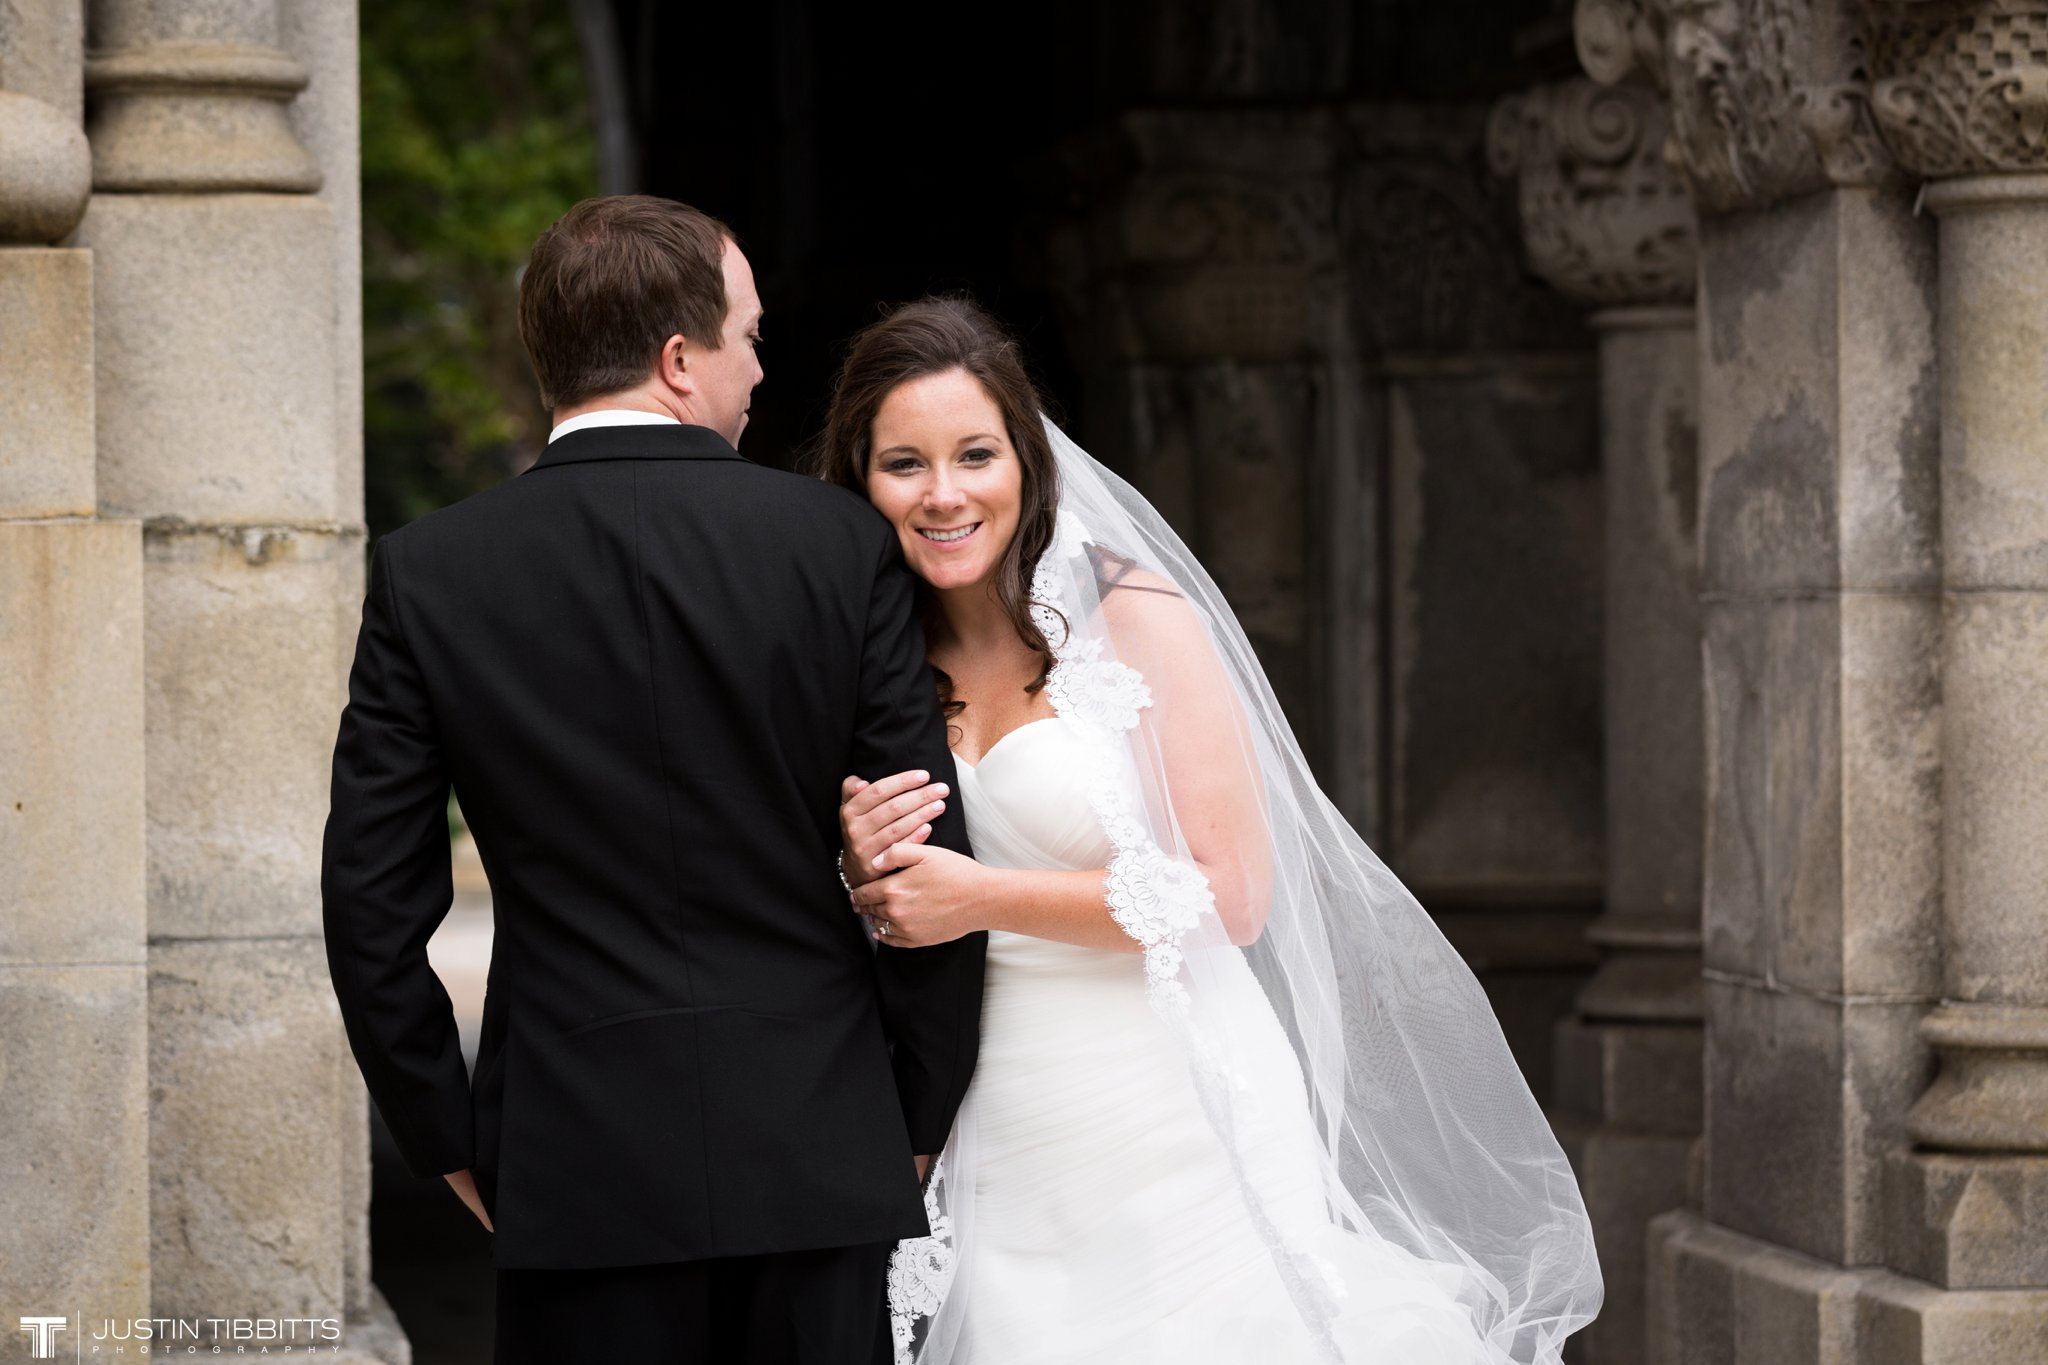 The State Room Albany, NY Wedding with Christian and Meg by Justin Tibbitts Photography_0103